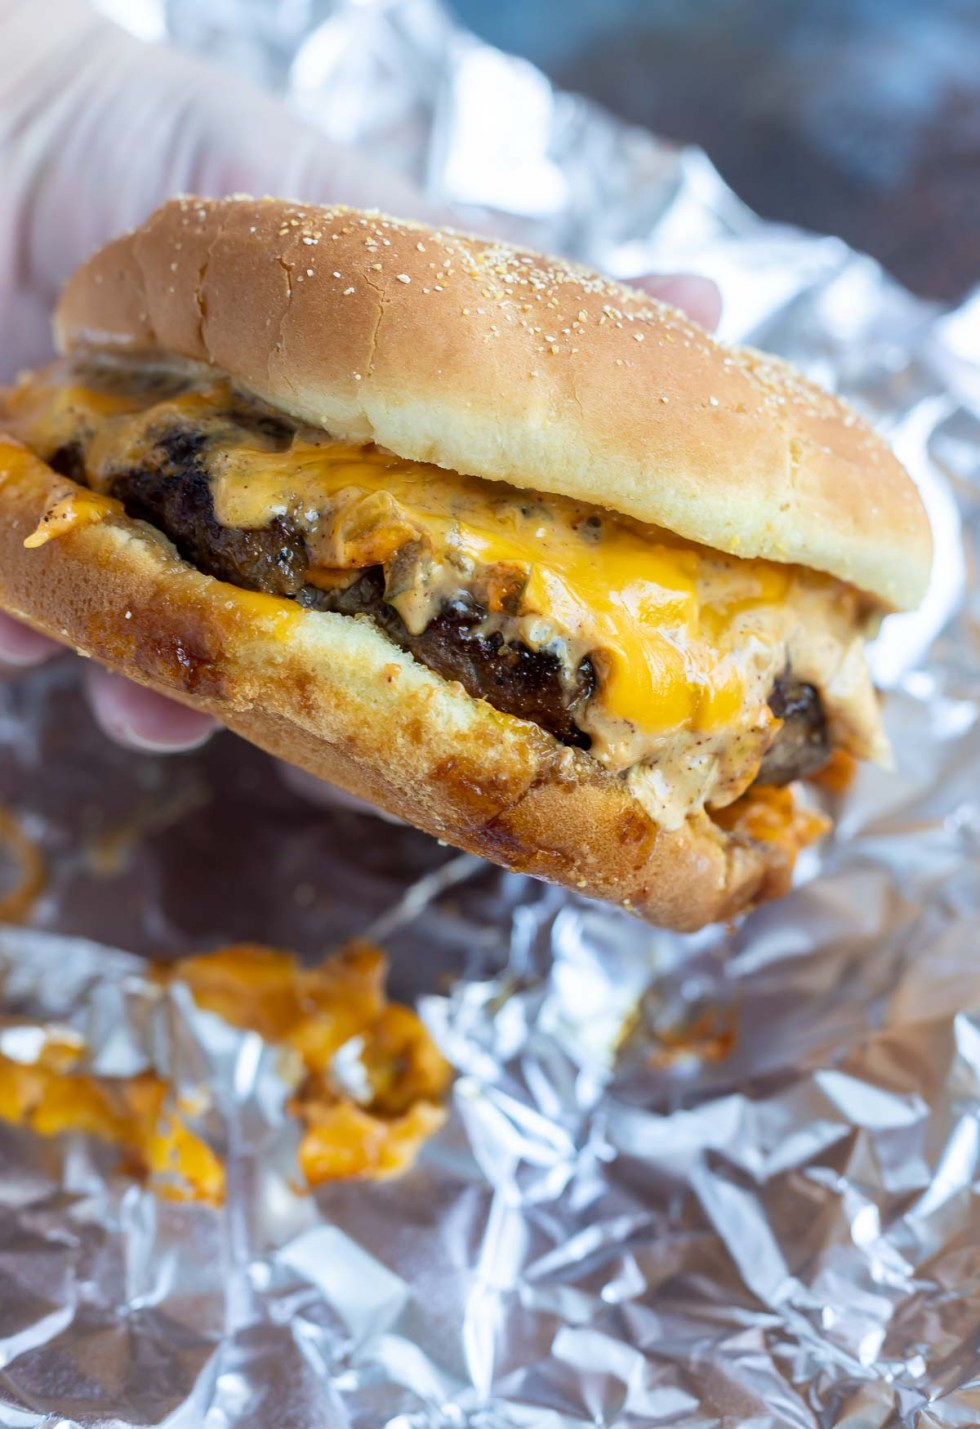 hand holding messy cheeseburger with melted cheese and sauce